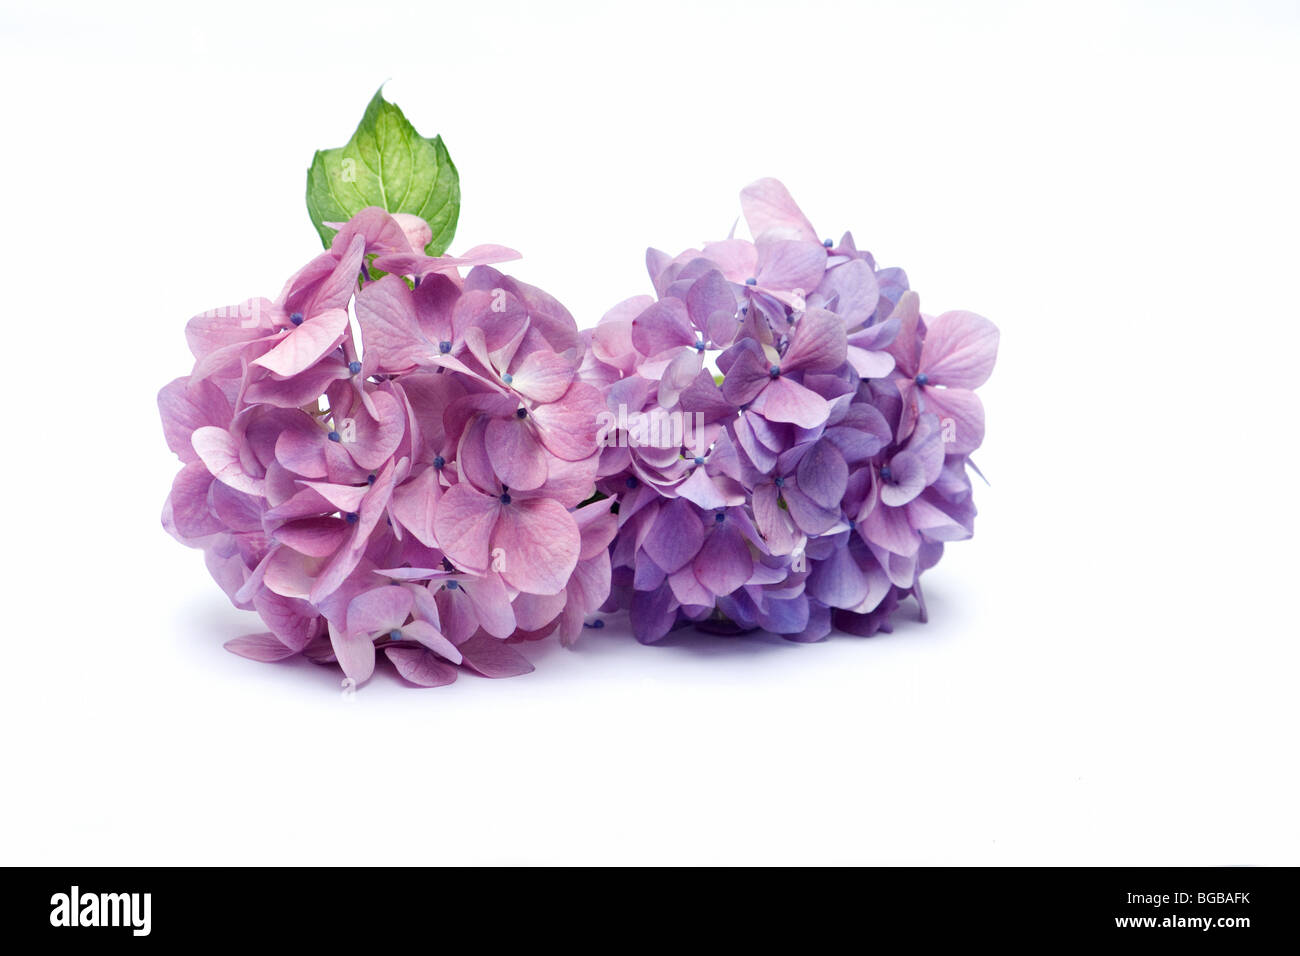 Close-up of hydrangeas - Stock Image